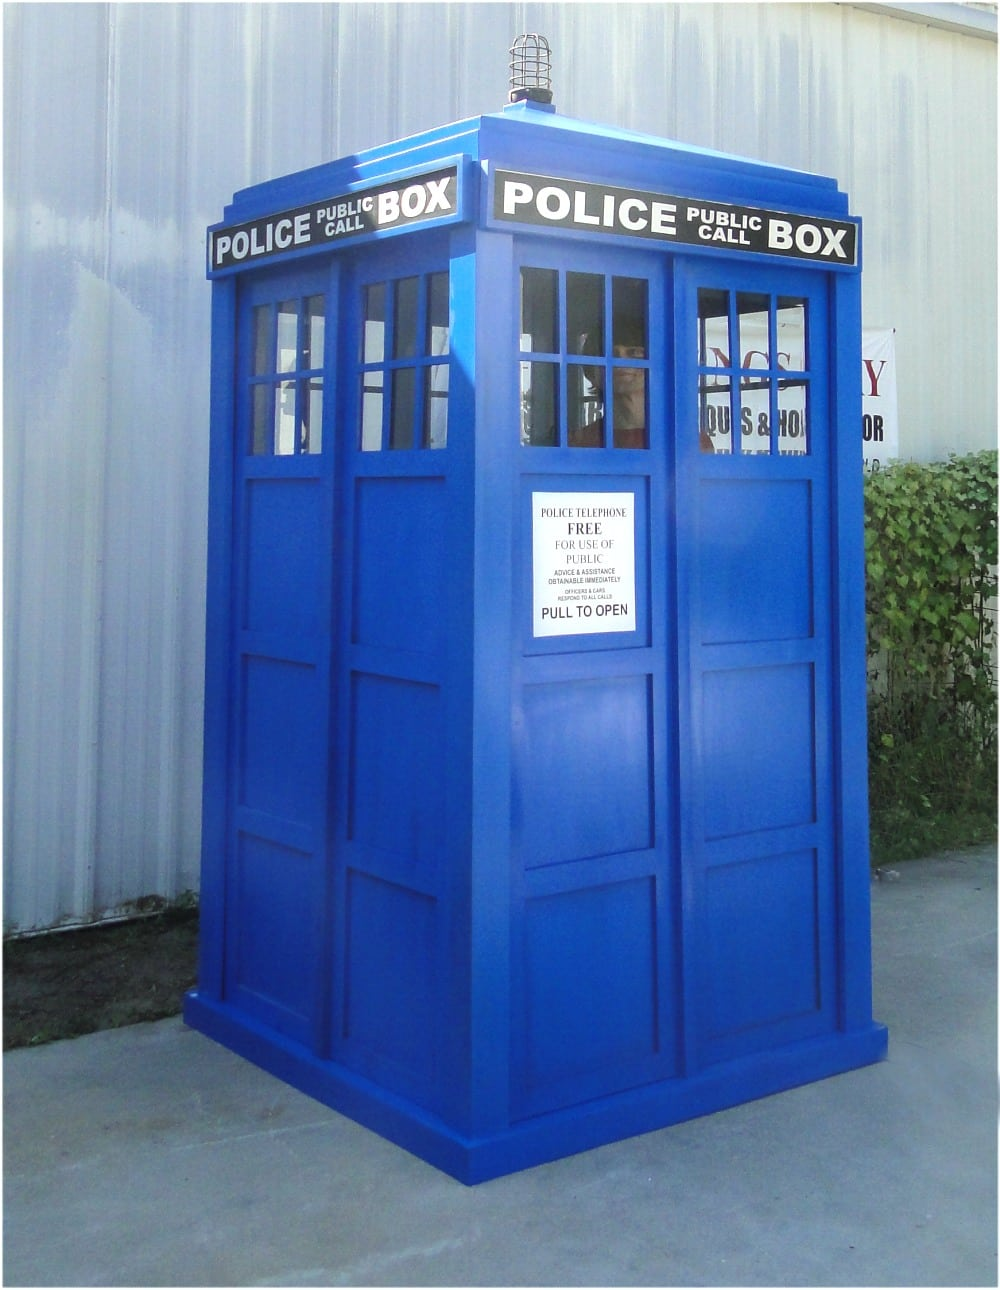 Pull Phone Box Wiring Diagrams Blue English Police Call Doctor Dr Who Tardis Booth Full Rh Thekingsbay Com Electrical Boxes Sizes Sizing